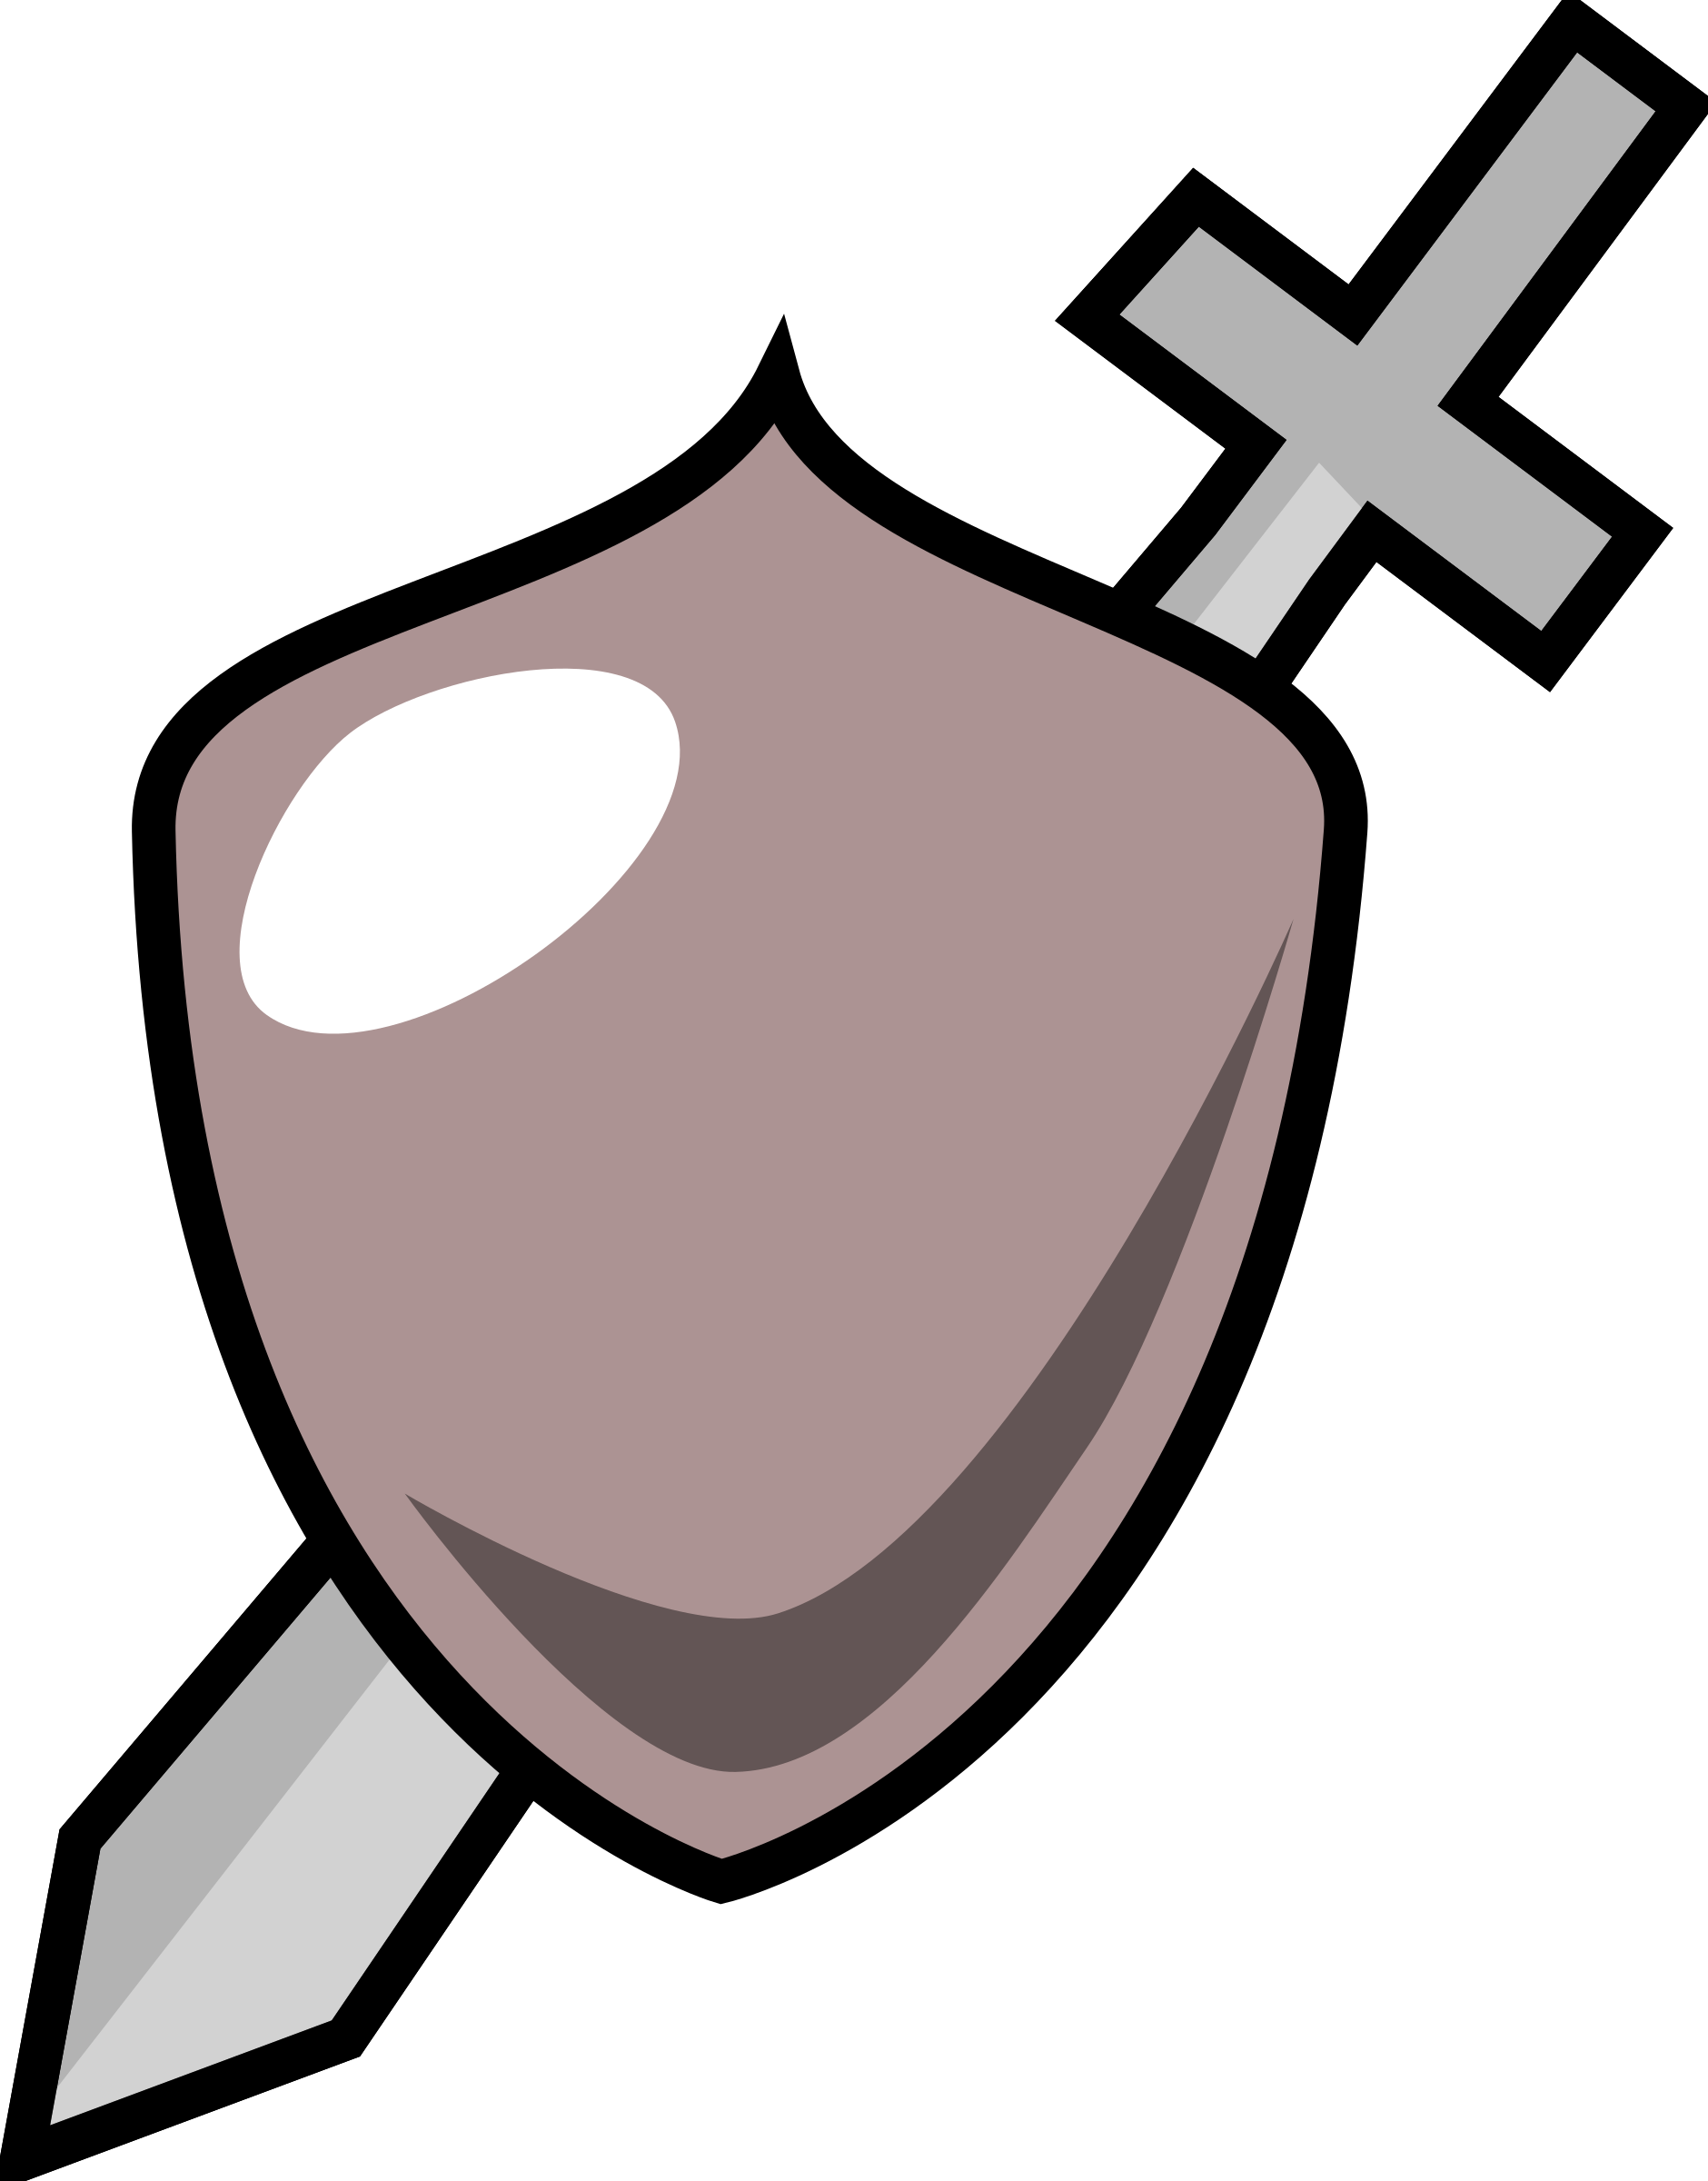 Sword and shield png. Icon icons free downloads